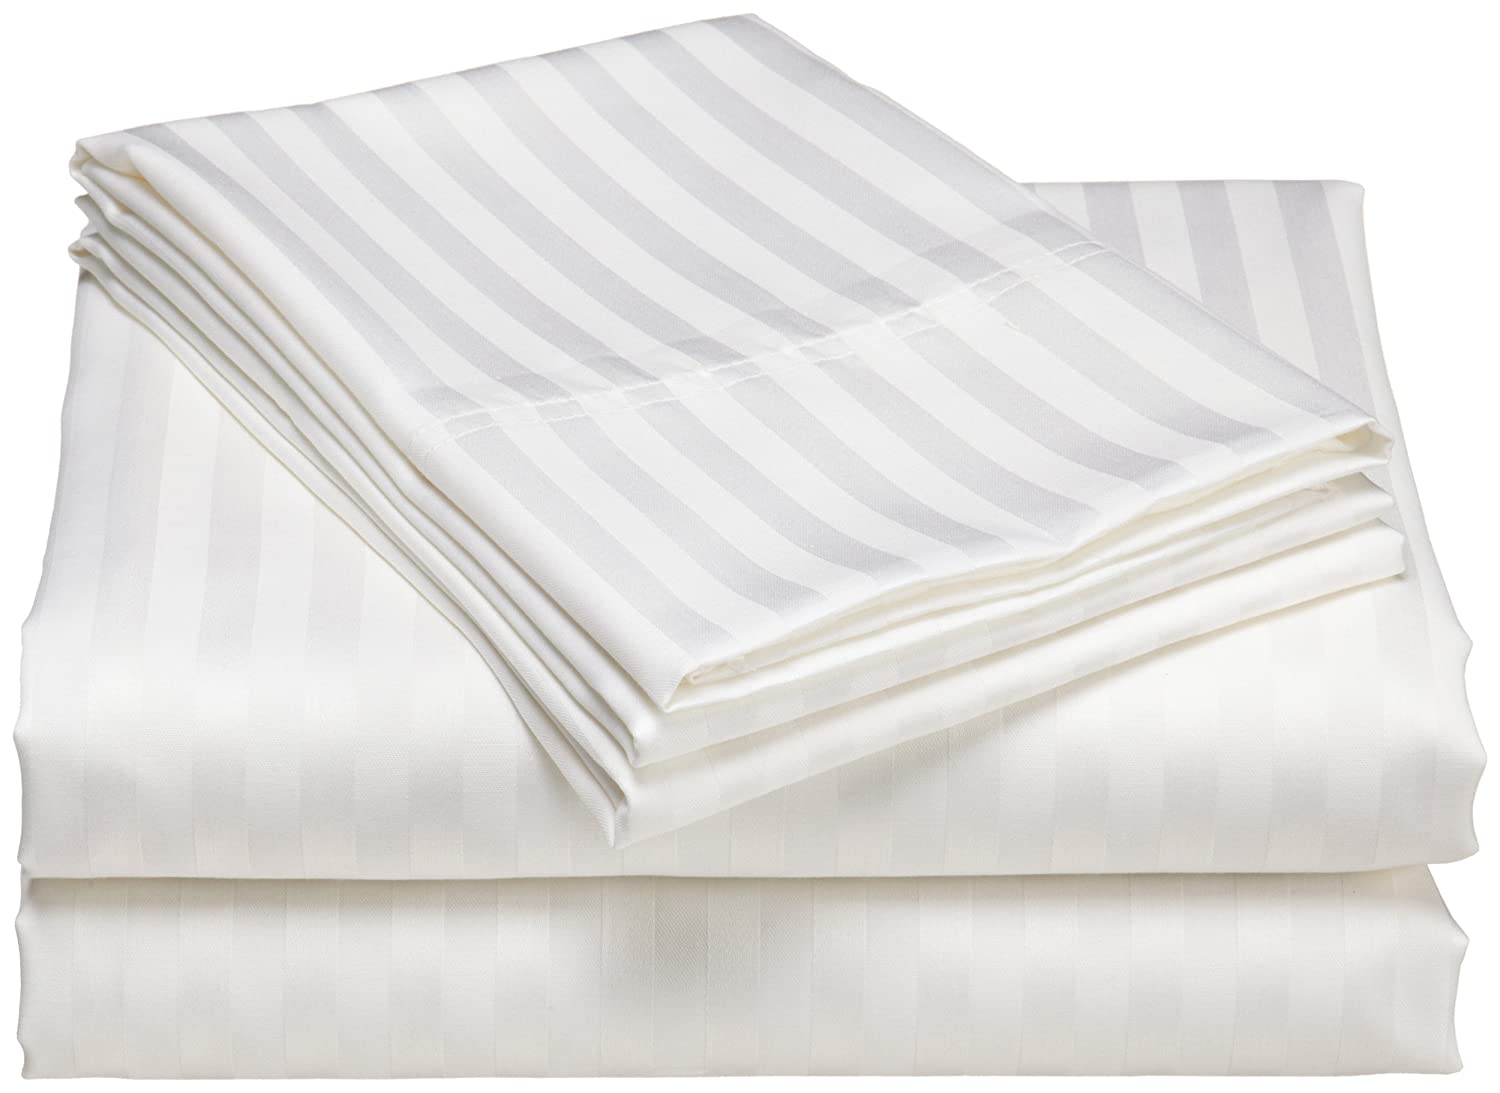 Elite Home Wrinkle-Resistant 300-Thread-Count Woven Stripe Cotton Sheet Set